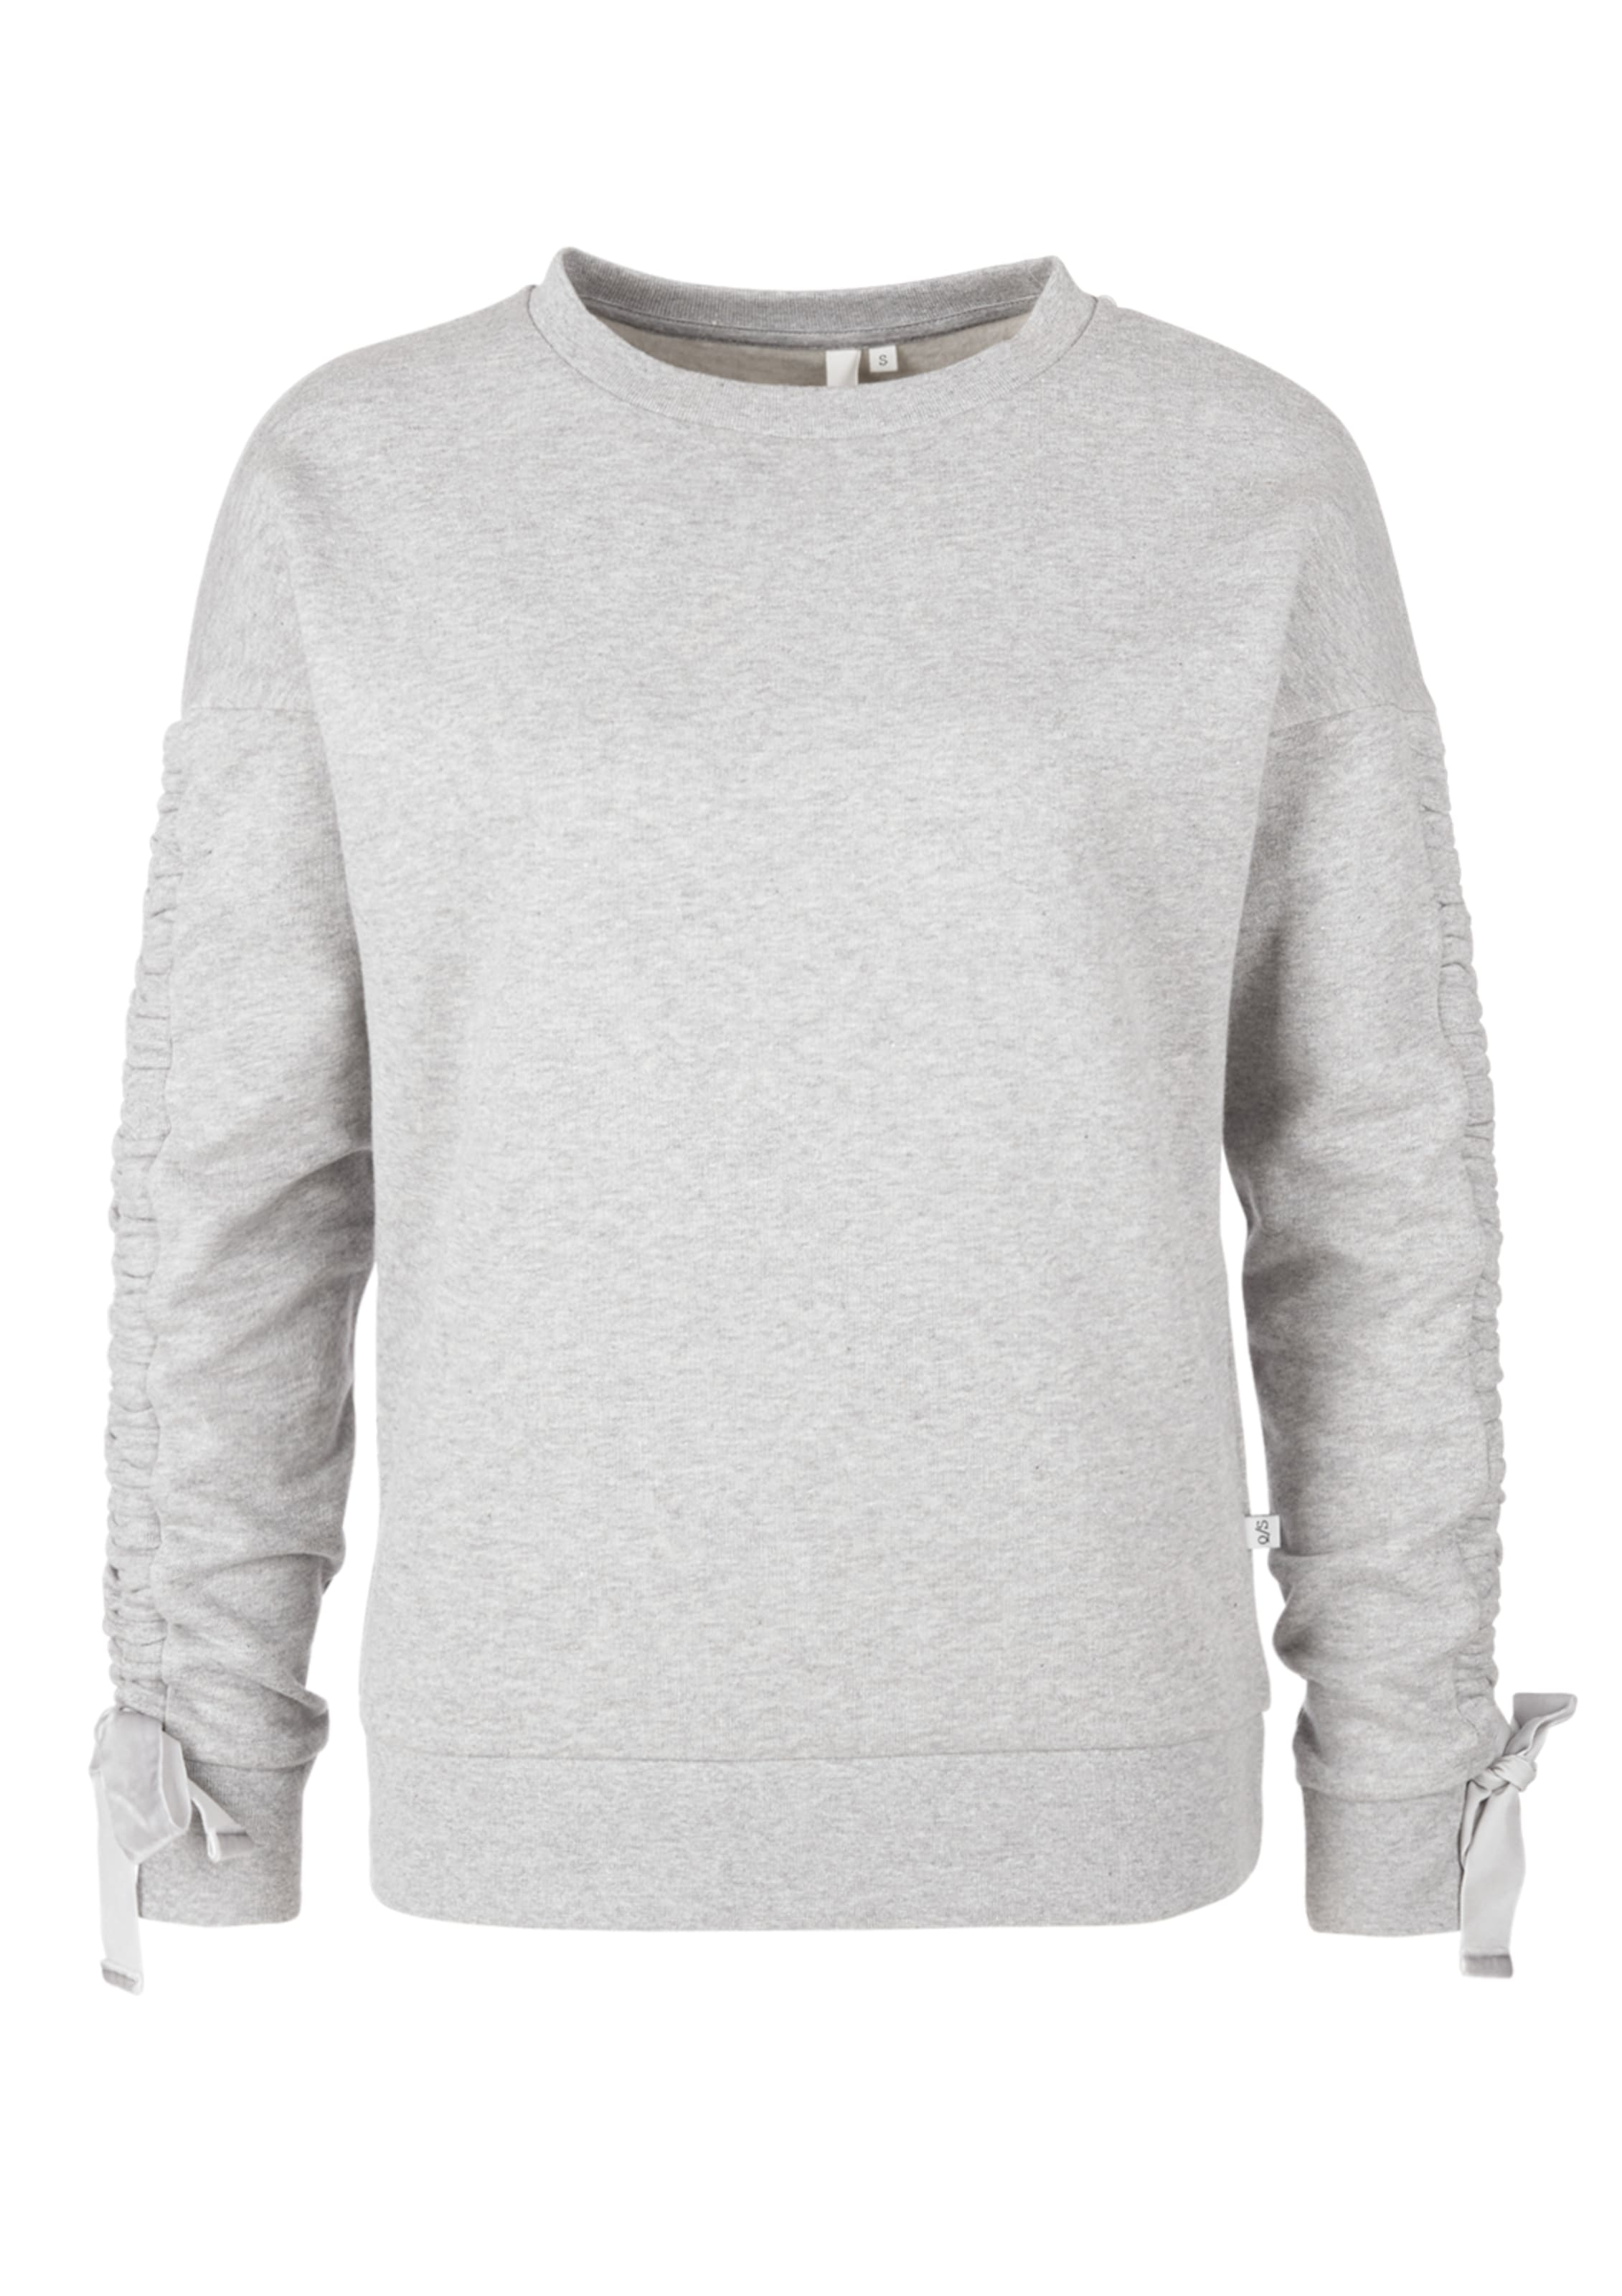 s Sweatshirt Q Grau In Designed By 3L54RjA